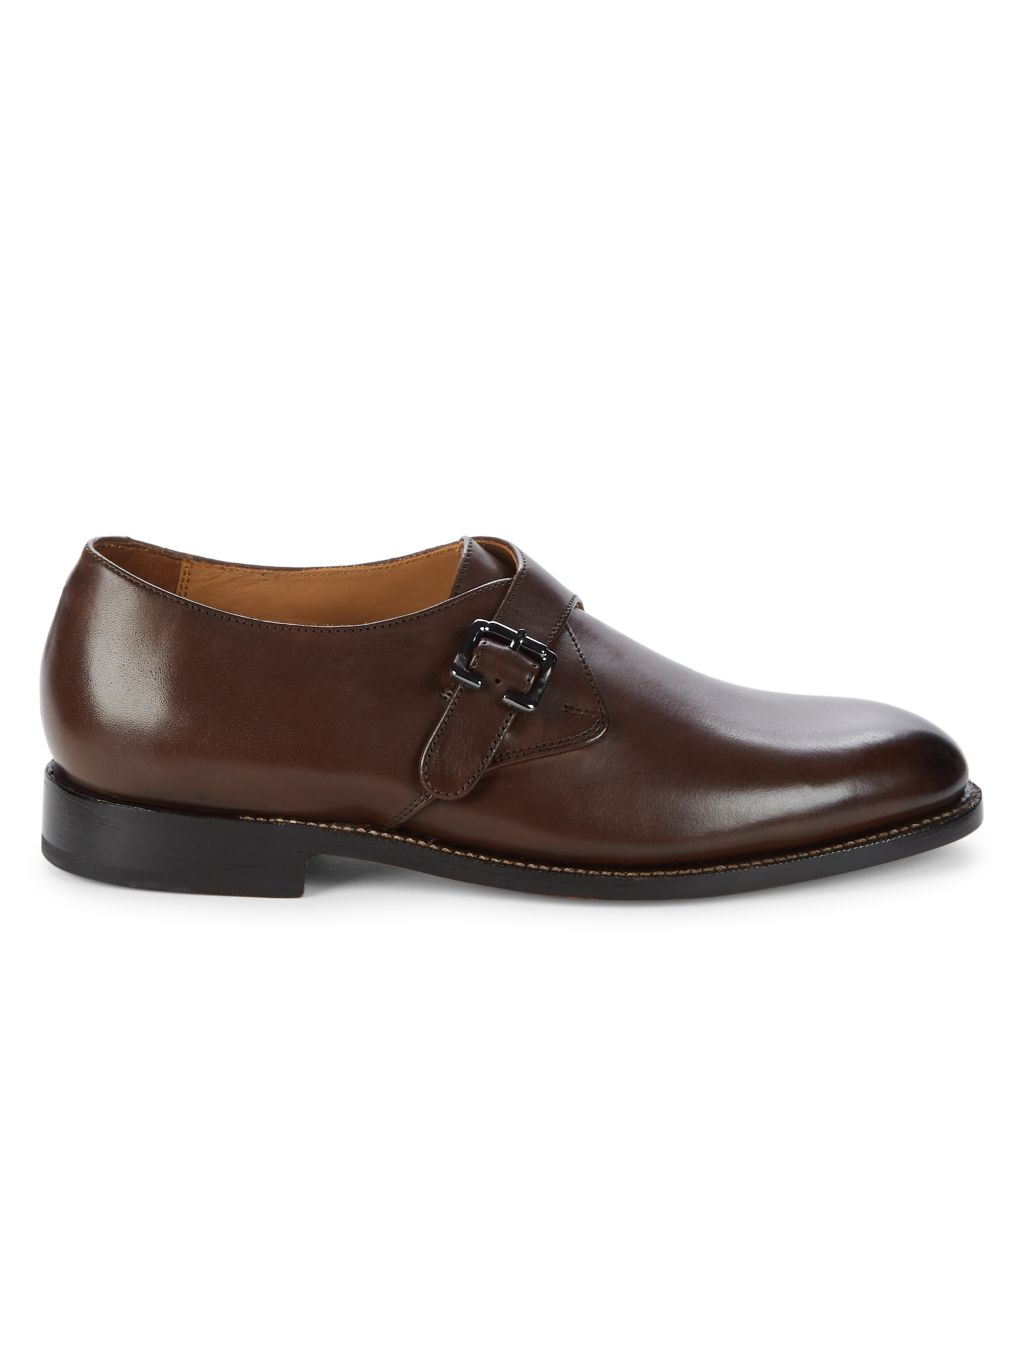 Nettleton Leather Front Buckle Oxfords